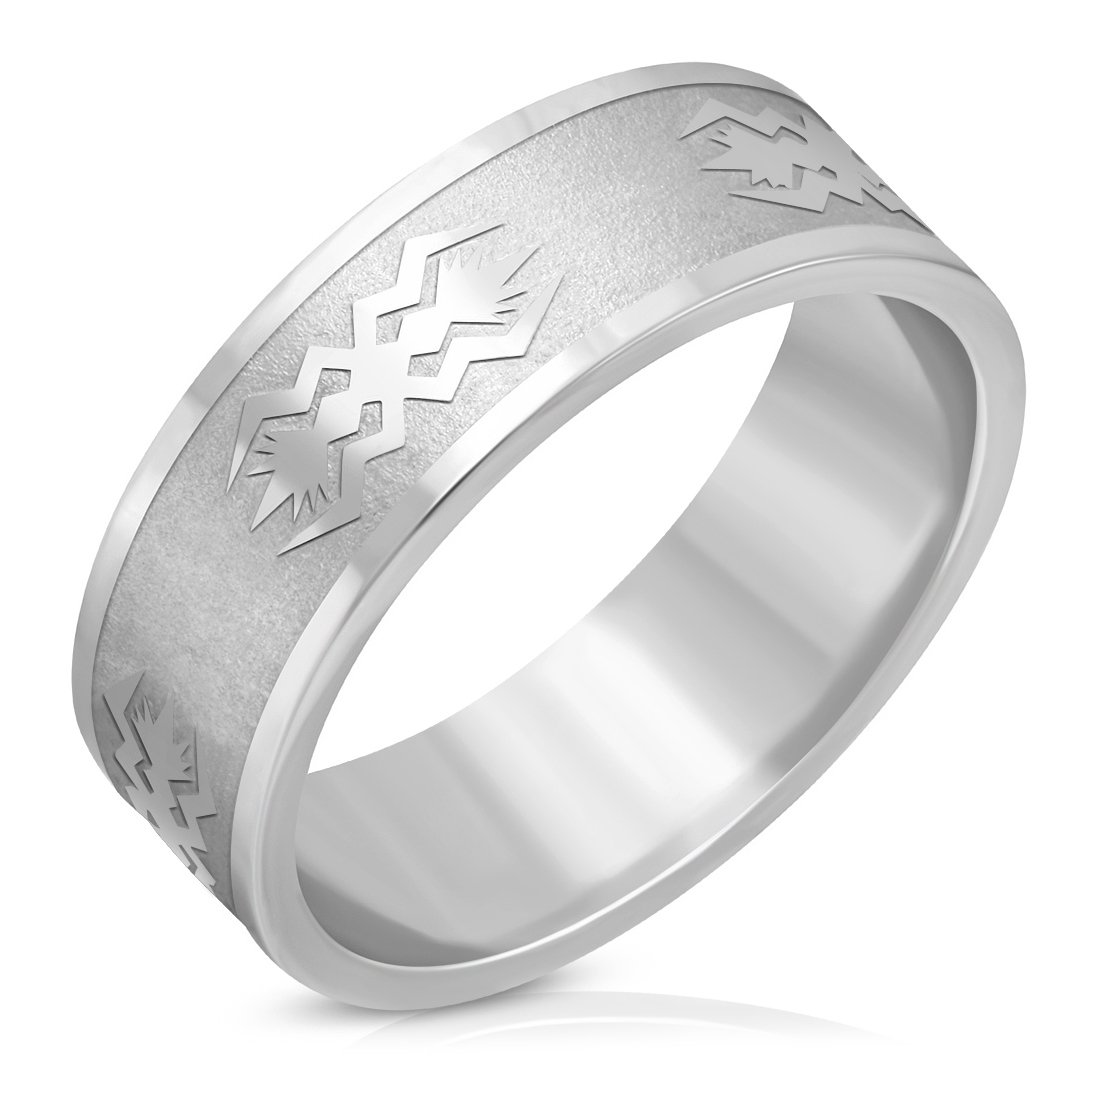 Stainless Steel Matte Finished Geometric Wave Flat Band Ring